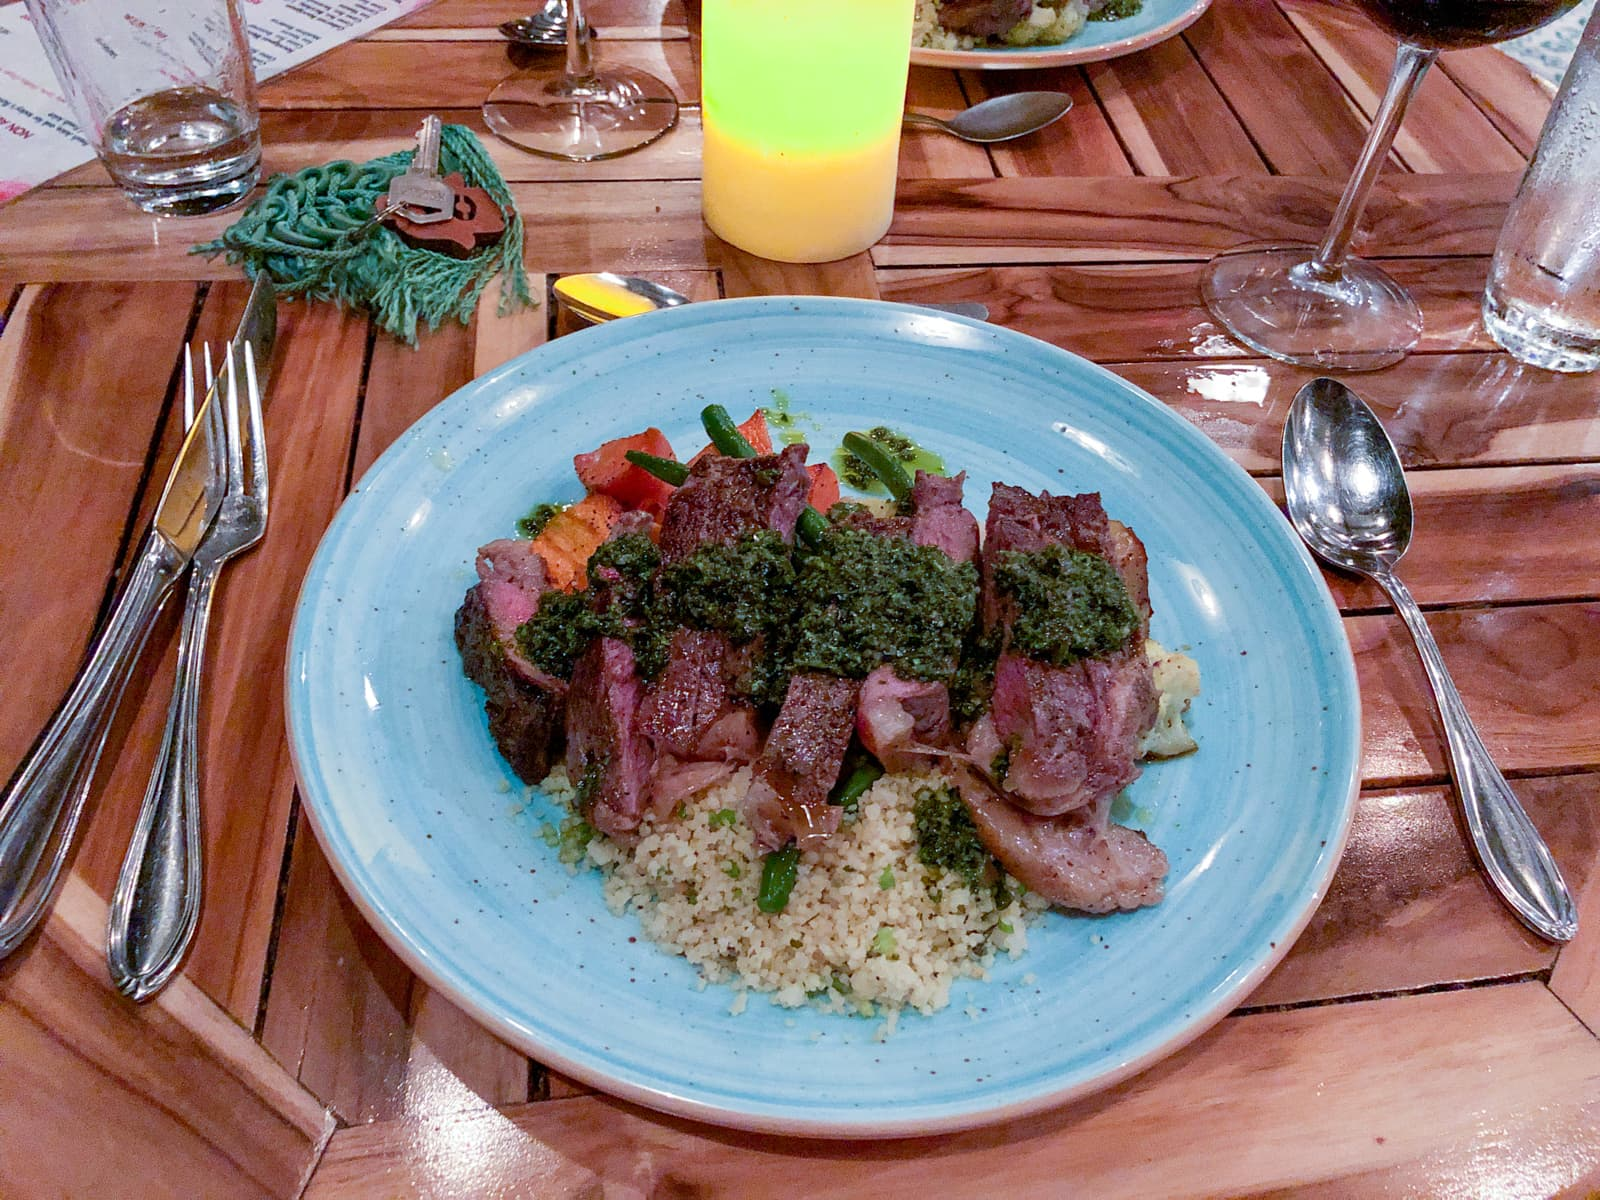 Steak with chimichurri sauce and couscous